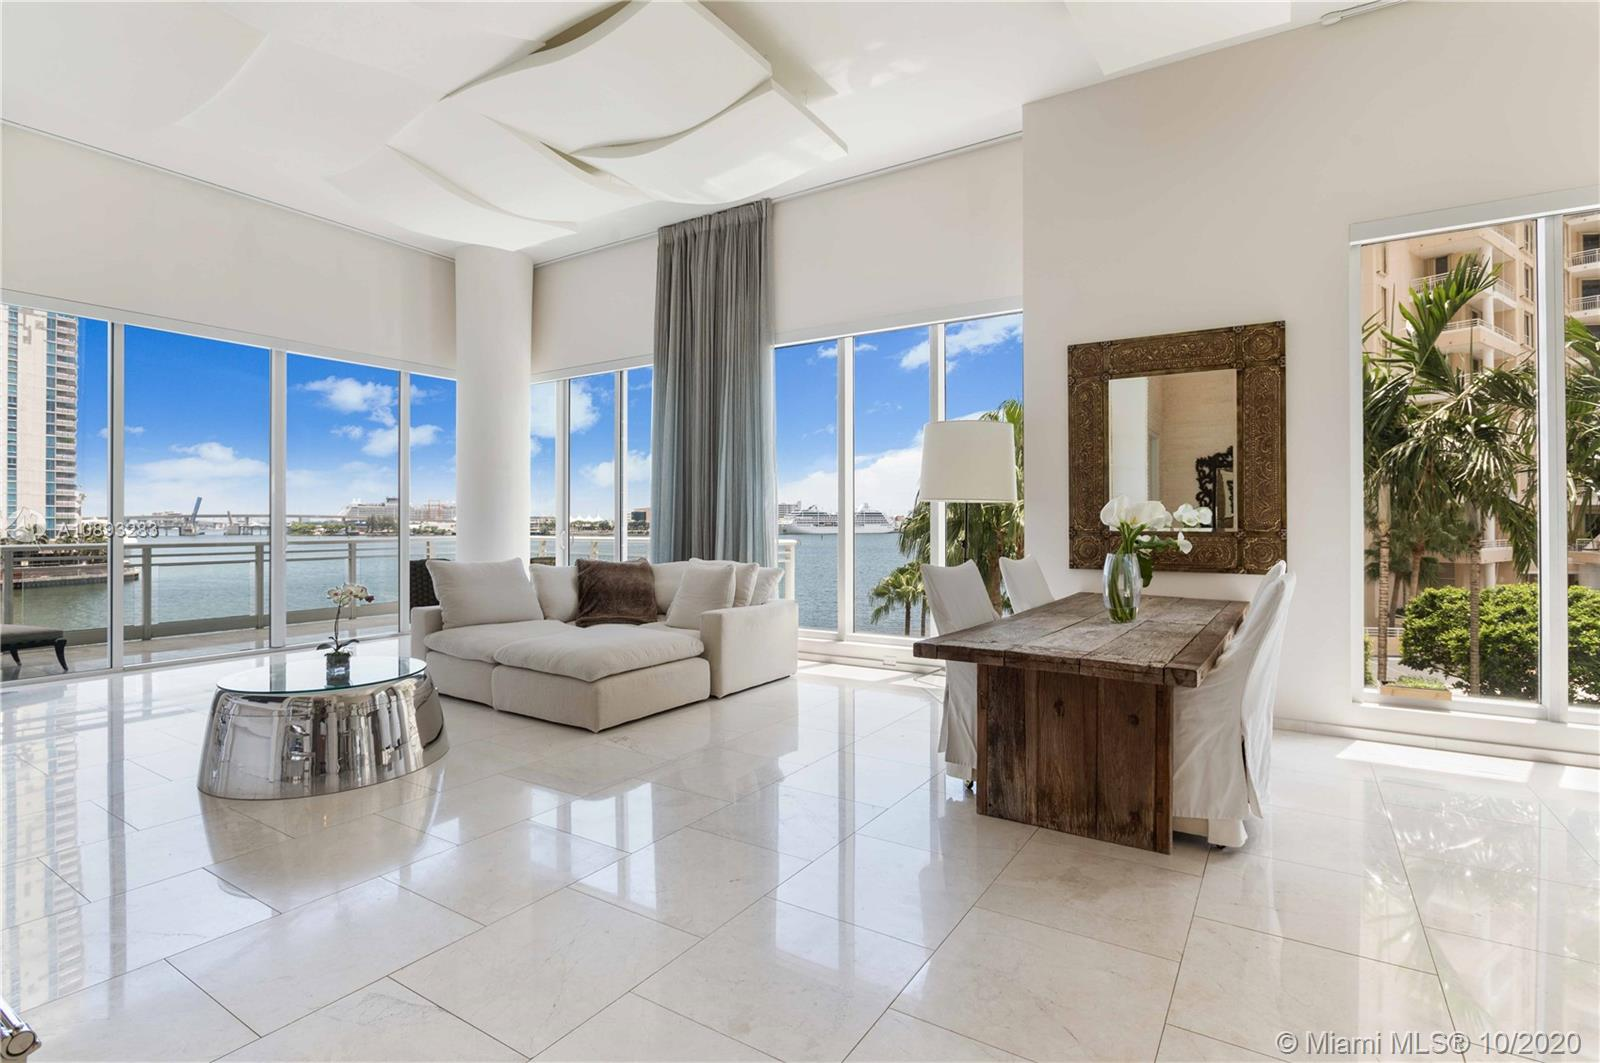 Huge Brickell Key, 4,631 Sq Ft, 2 story condo townhouse connected by a glass spiral staircase incl. 4 beds, 4 full +2 half baths. Direct waterfront, corner unit, where you can enjoy the sunrise, cool breezes & city views while relaxing on one of the 4 balconies including a wrap around. First floor has 14-foot ceilings; second floor has 12-foot ceilings. Enjoy your own private elevator, 2 gourmet kitchens w/ top-of-the-line appliances, a personal infrared sauna inside the unit, parking for 8 cars, 2 storage rooms conveniently located next to the unit. Asia is a luxury boutique building with full amenities, guest valet parking, 24-hour concierge, tennis courts, racquetball, gym, pool. Walking distance to restaurants, marketplace, parks and playgrounds. Marketed exclusively by Techrin Hijazi.